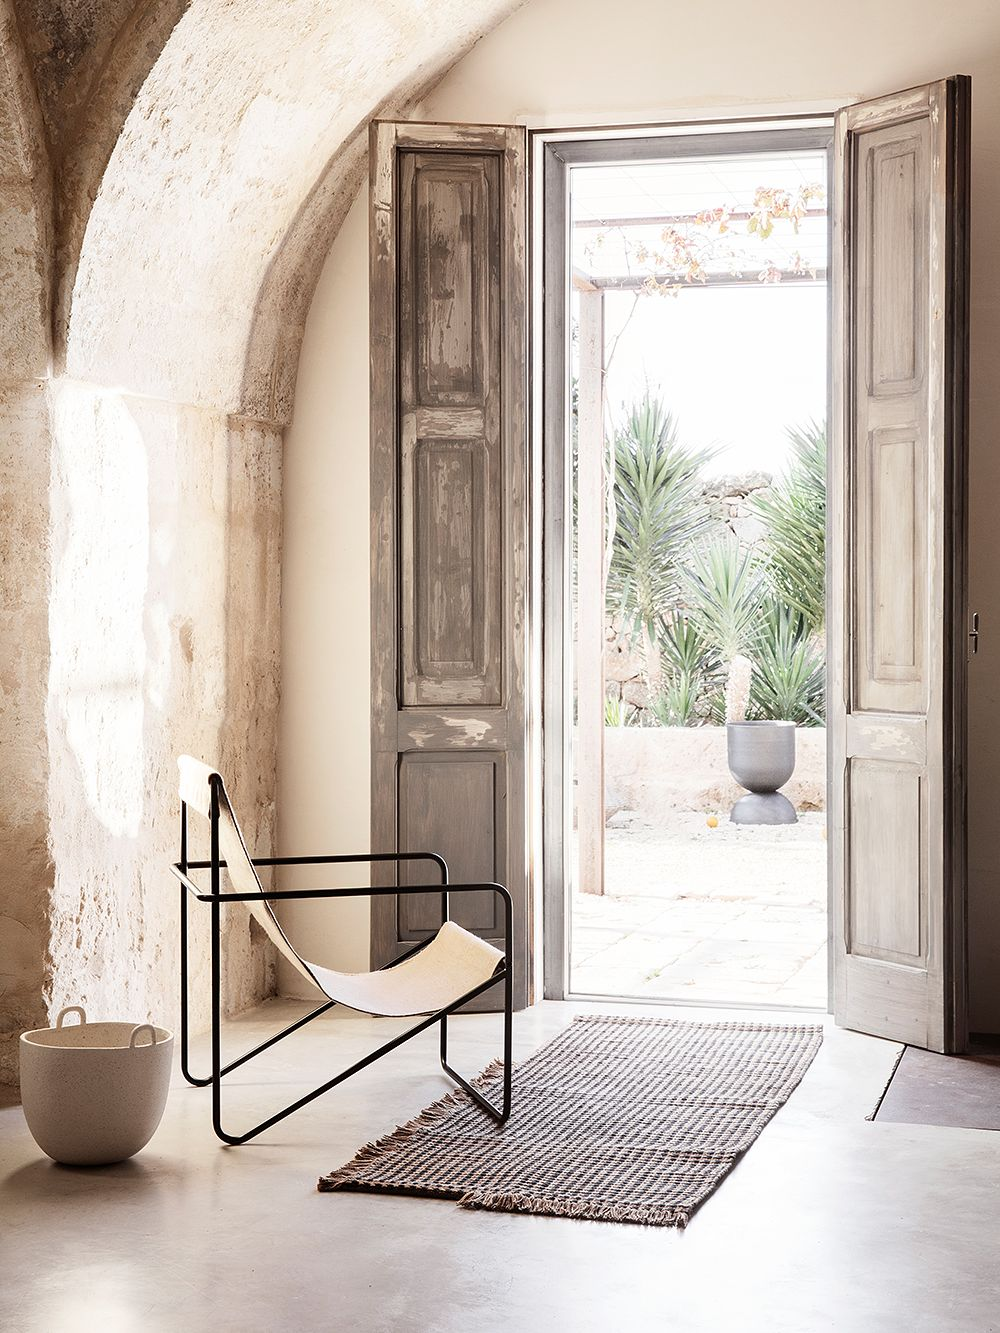 Desert lounge chair by Ferm Living